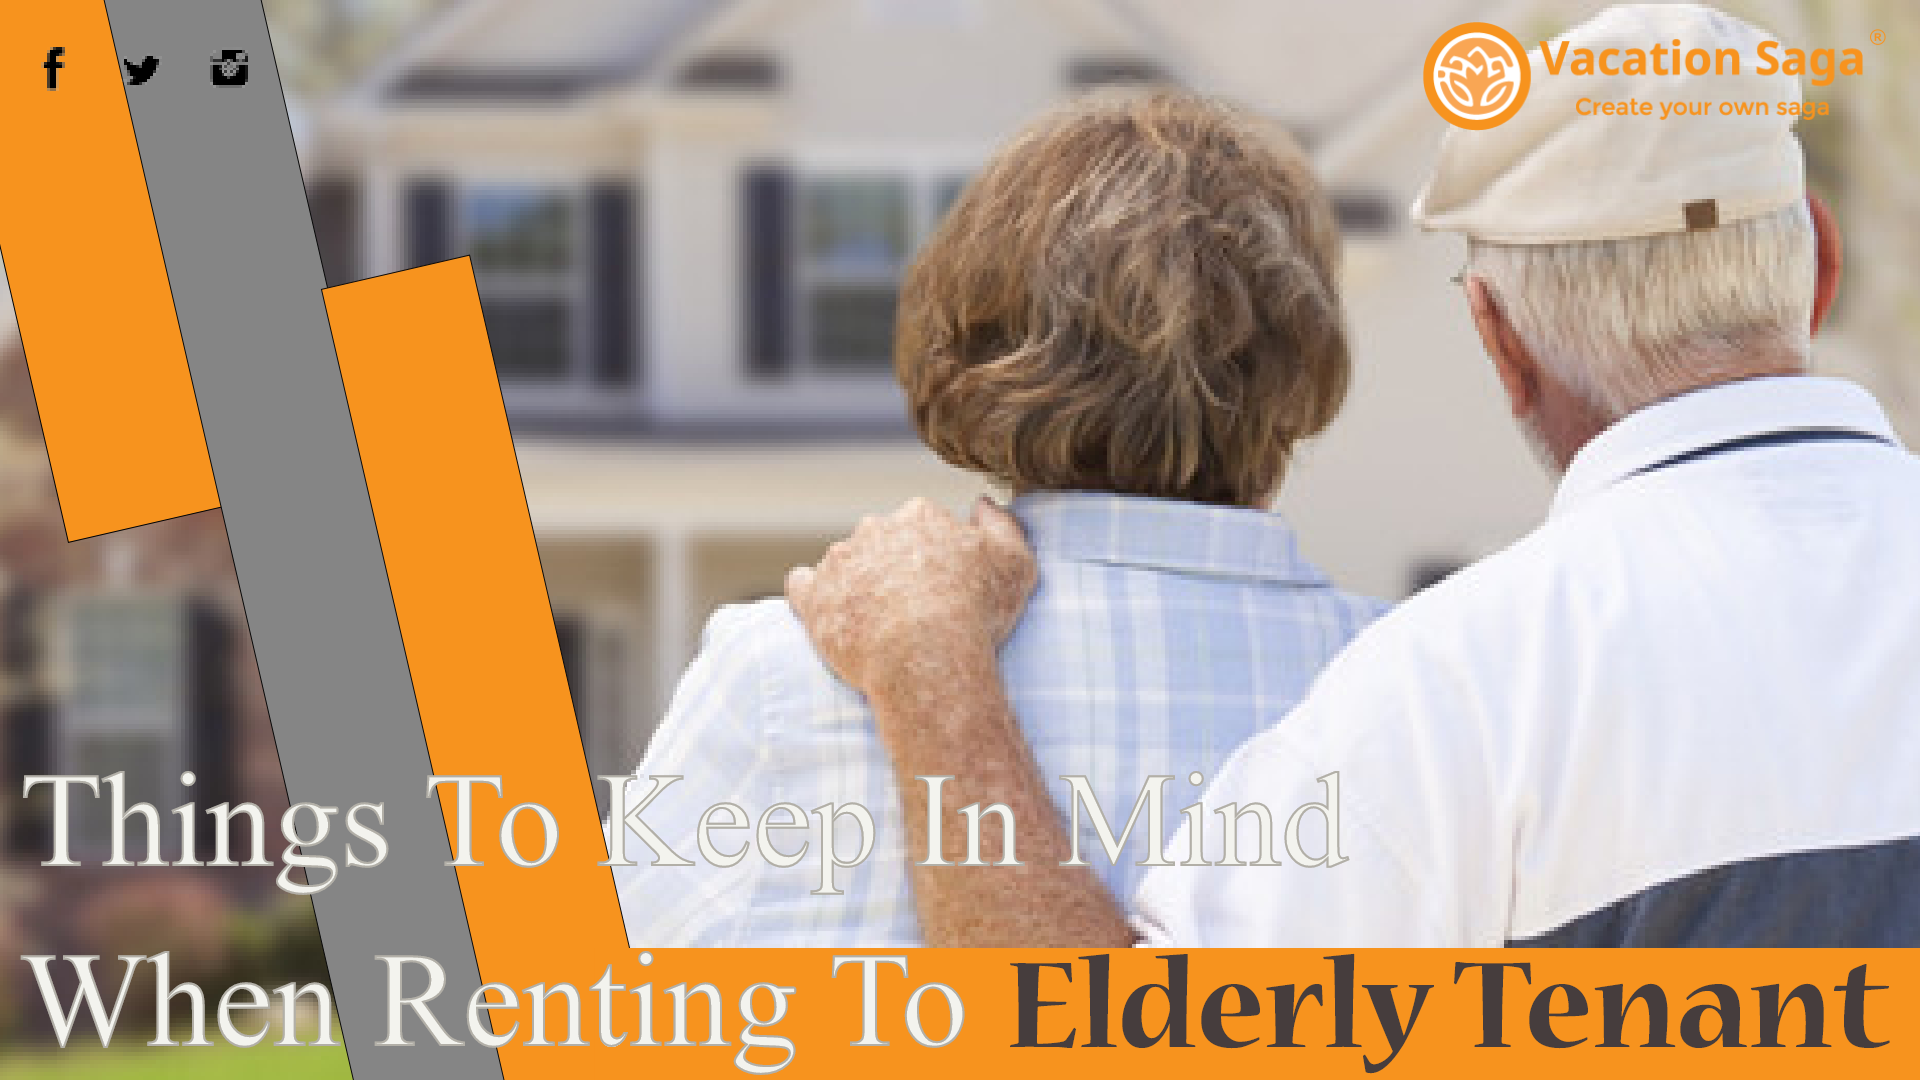 Things To Keep In Mind When Renting To Elderly Tenant